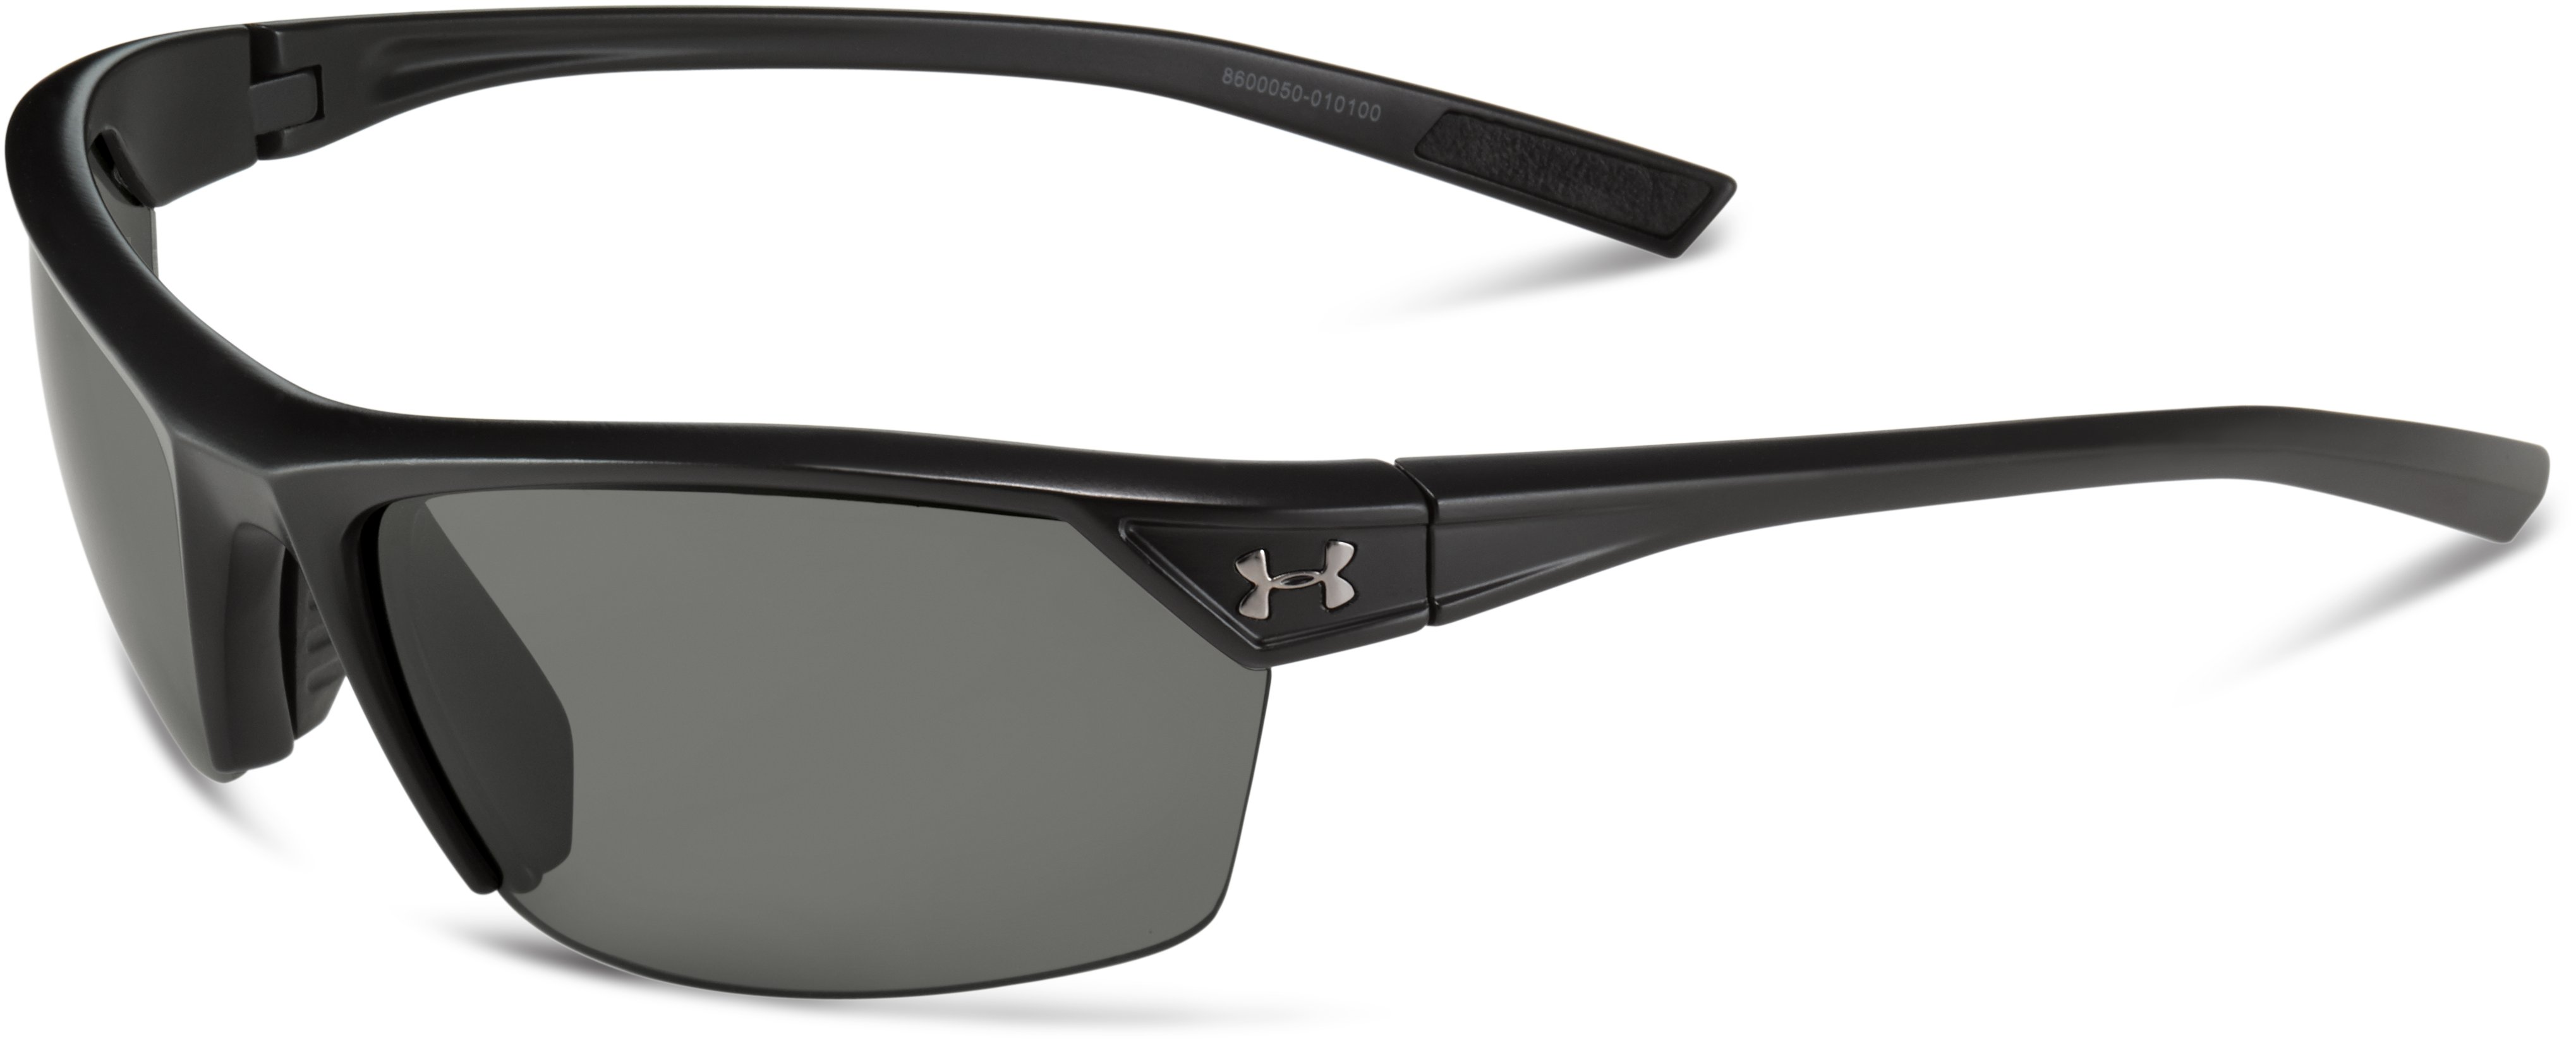 UA Zone 2.0 Sunglasses, Shiny Black